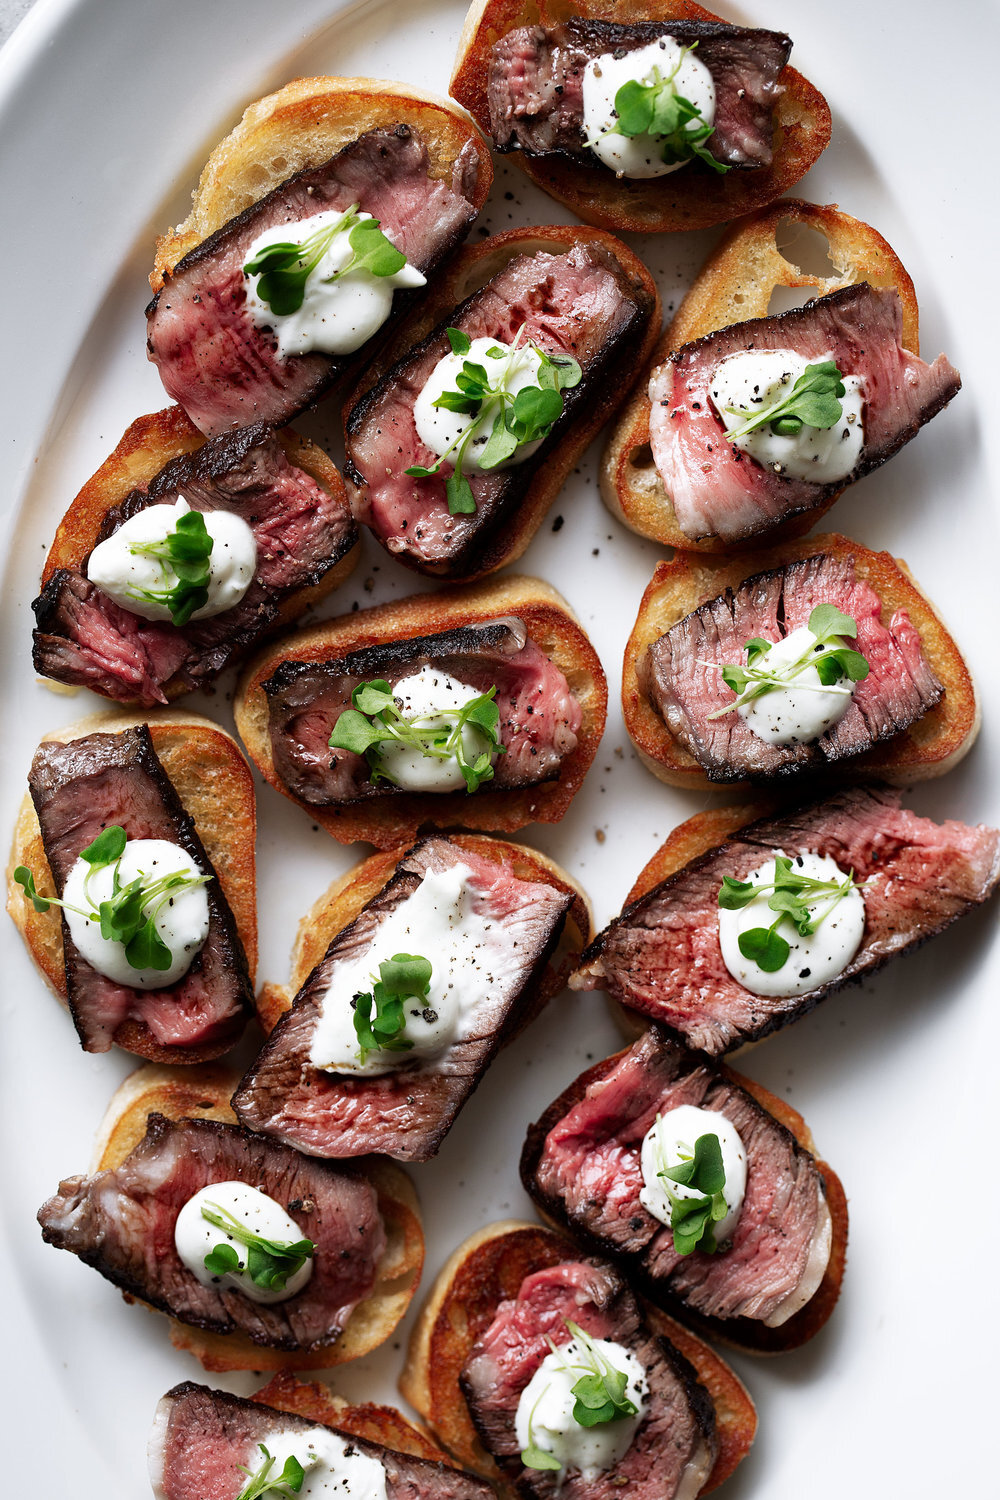 Steak & Boursin Cheese Crostini